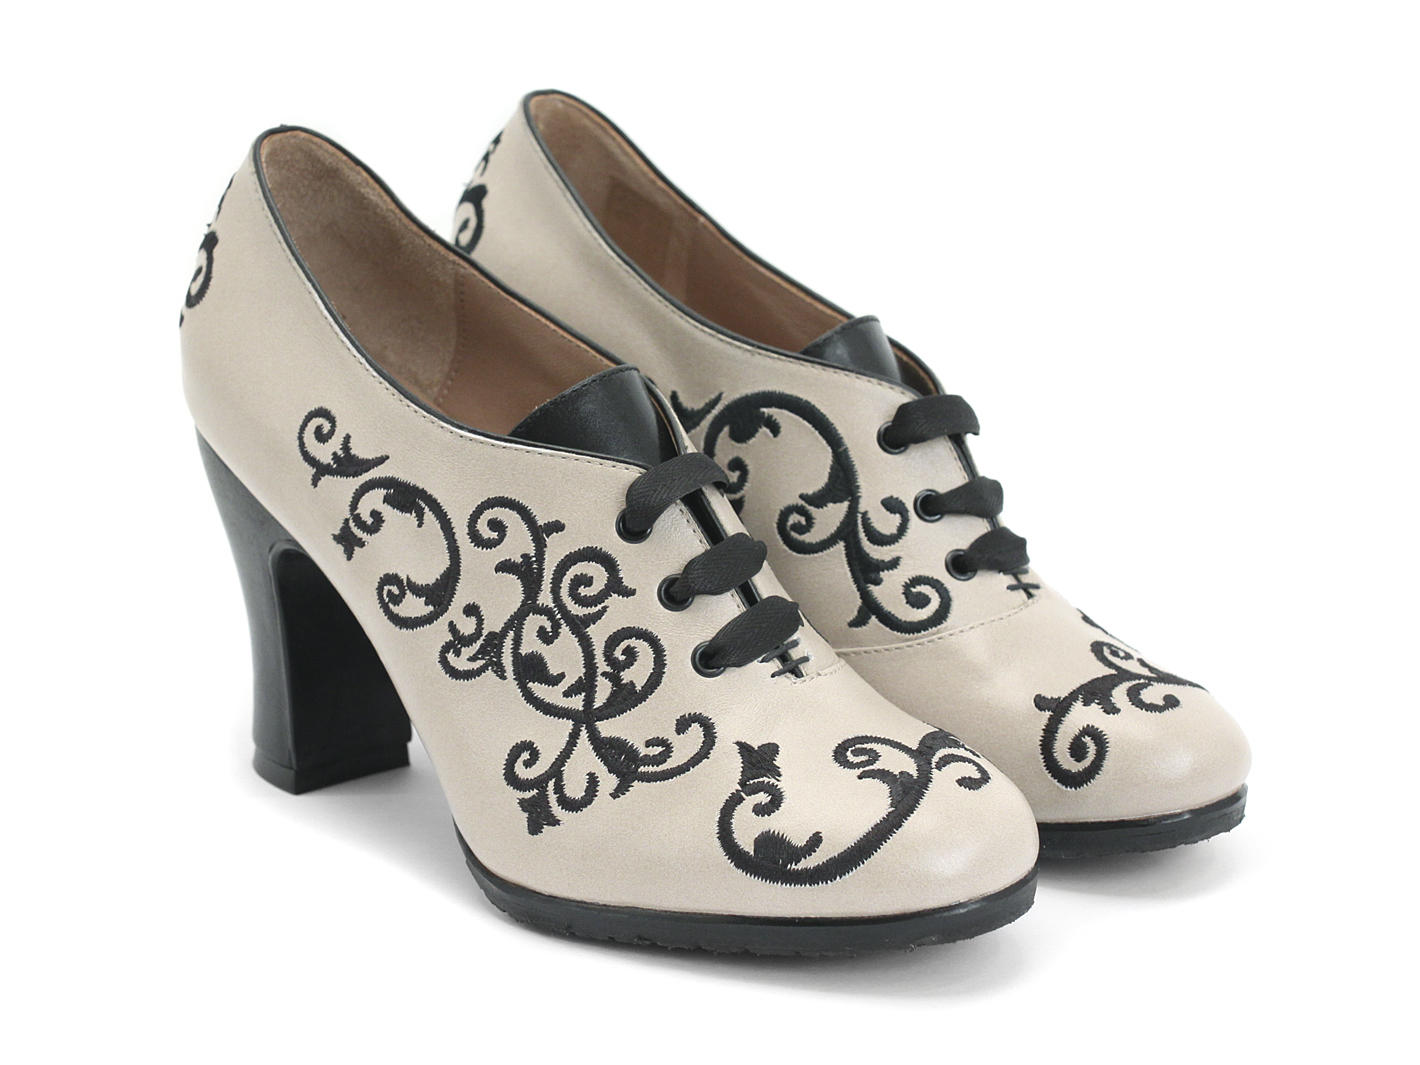 Cream Shoes, Women's Cream Shoes, Juniors Cream Shoes Macy's Presents: The Edit - A curated mix of fashion and inspiration Check It Out Free Shipping with $49 purchase + Free Store Pickup.